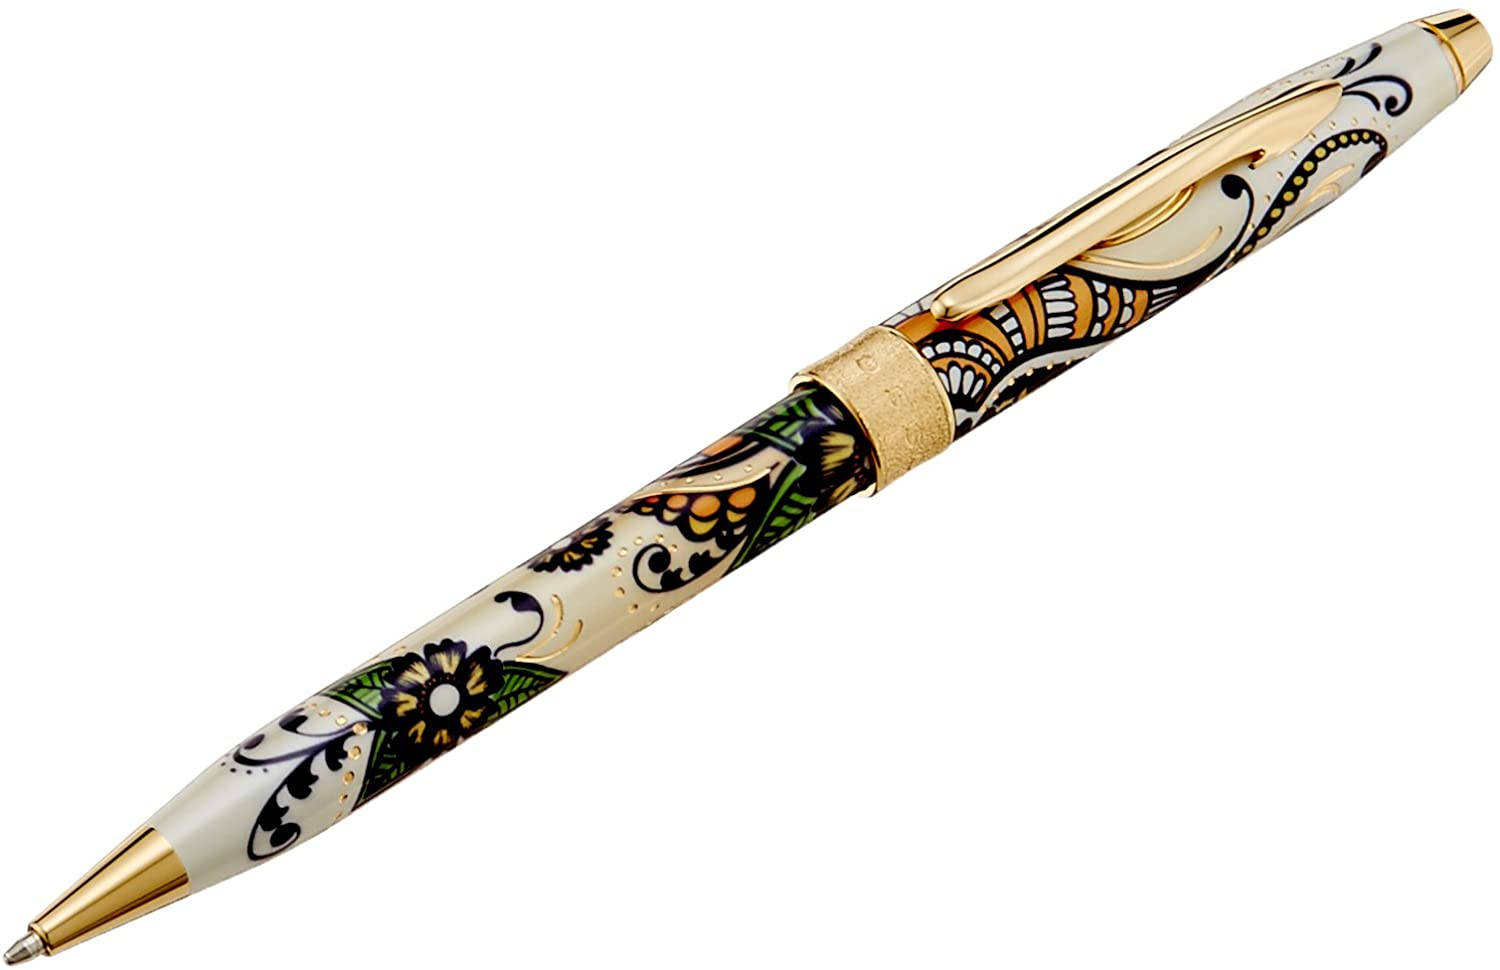 Cross Botanica Golden Magnolia Ballpoint Pen (AT0642-1)